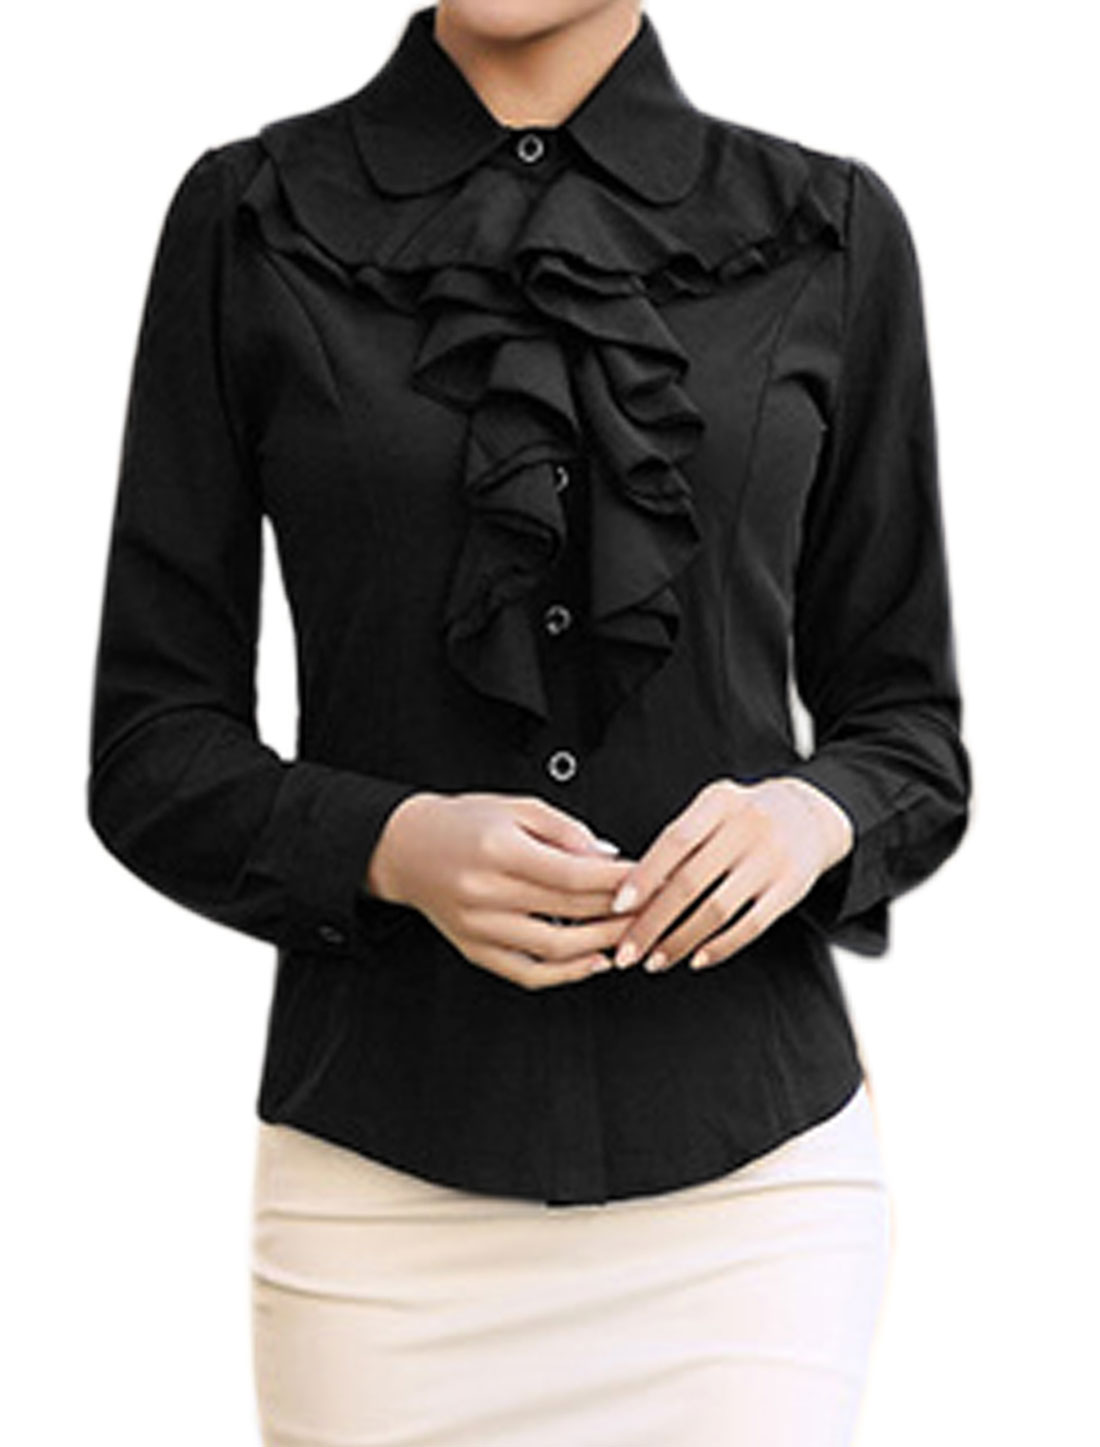 Ladies Collared Ruffled Slim Fit Button Up Shirt Black M